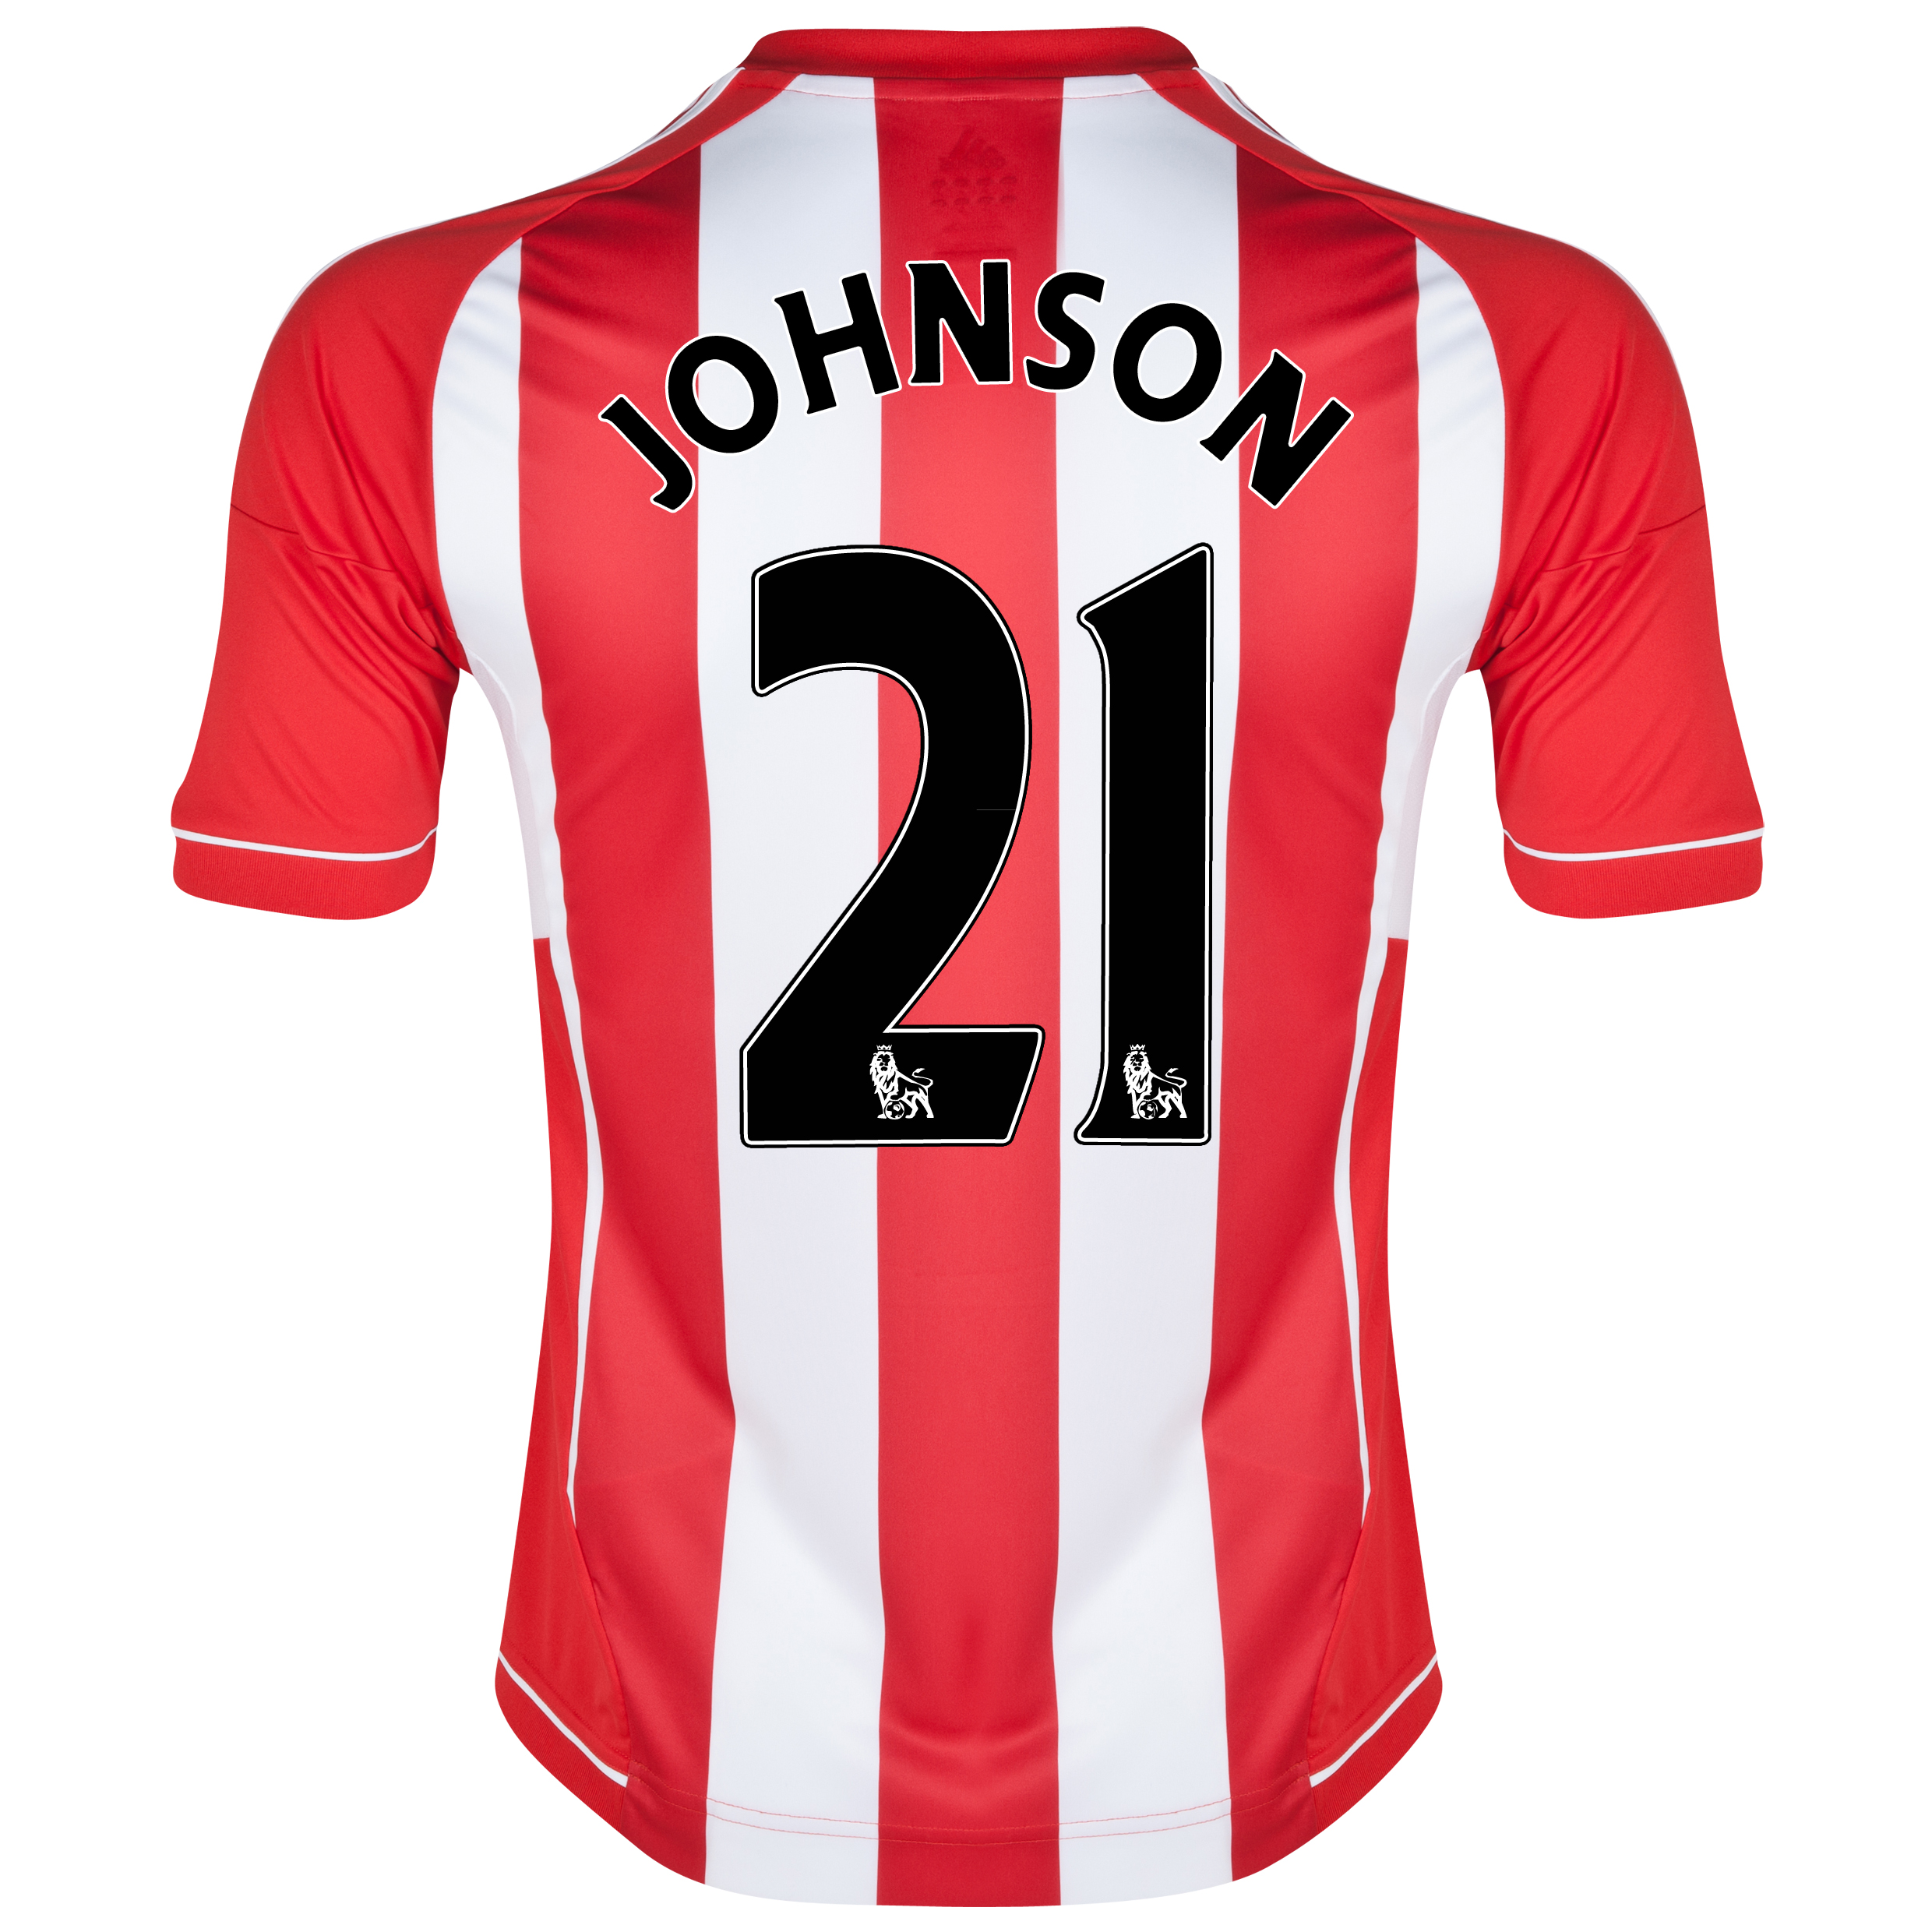 Sunderland Home Shirt 2012/13 - Junior with Johnson 21 printing